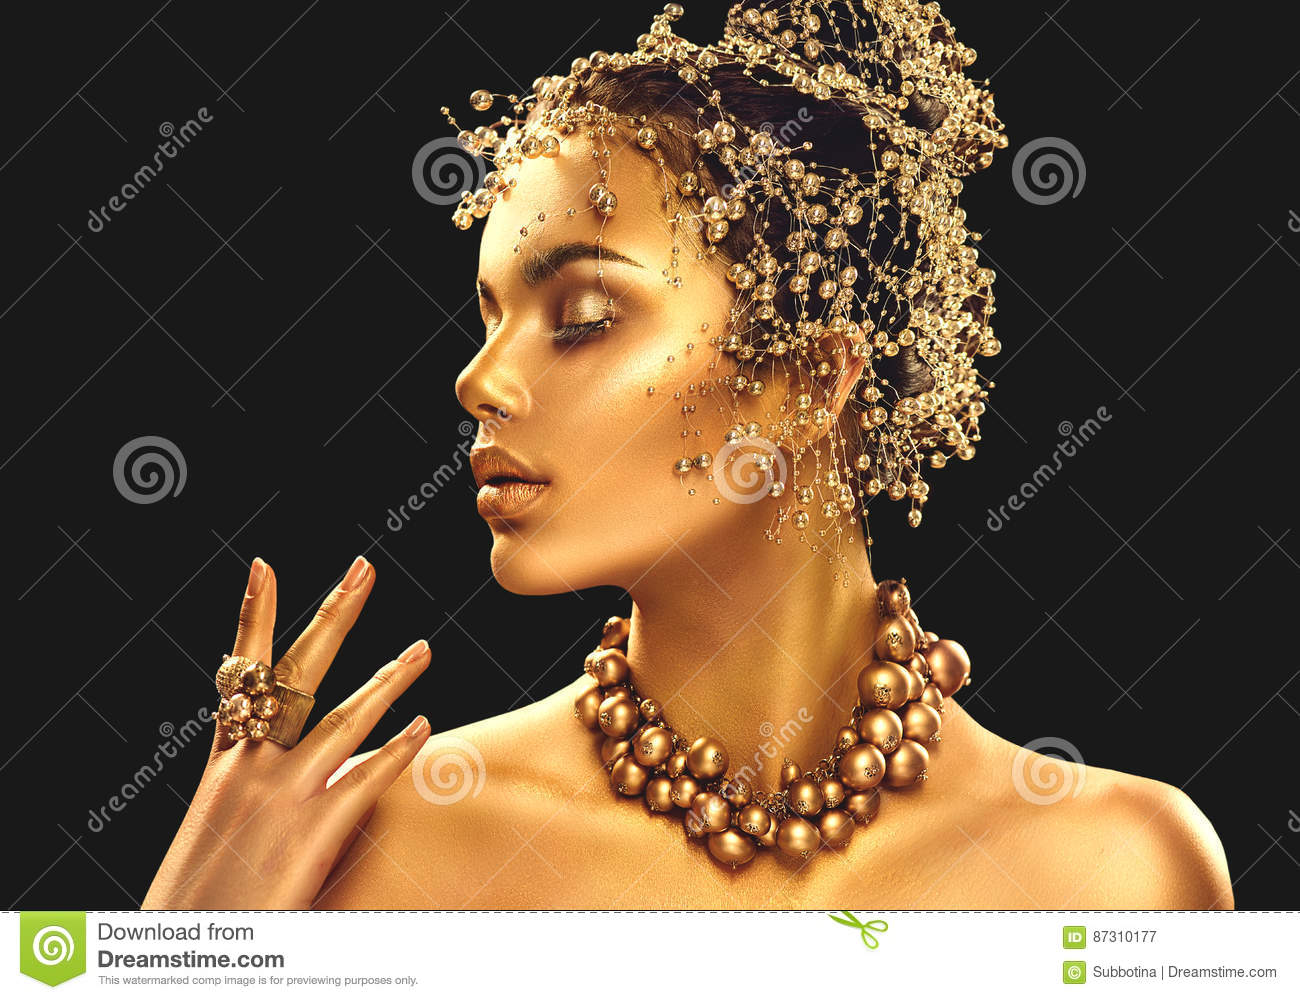 Gold Woman Skin. Beauty Fashion Model Girl With Golden